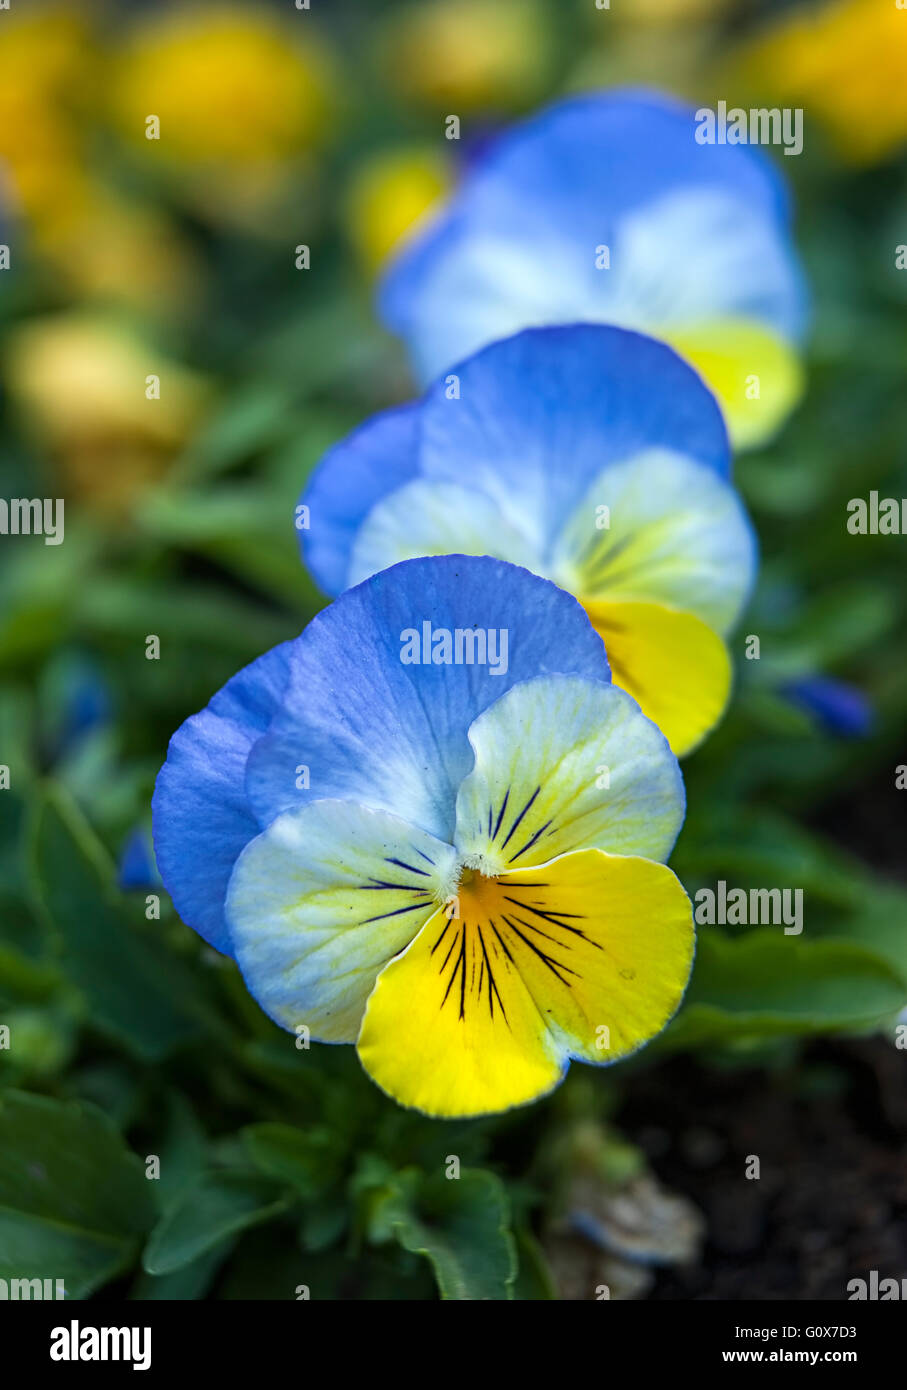 Blue And Yellow Pansies Stock Photos Blue And Yellow Pansies Stock